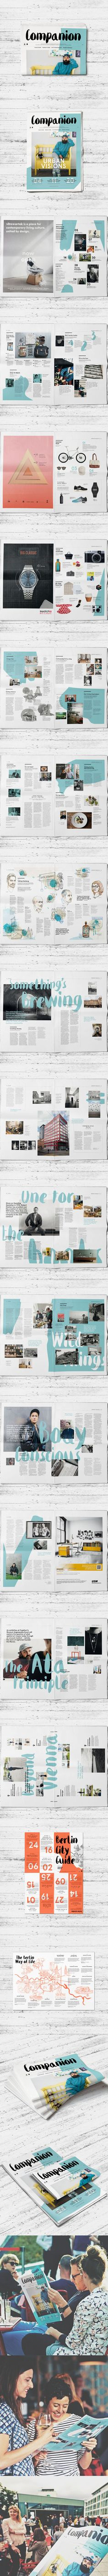 print design / editorial | Companion Magazine #02 by Stefan Schuster